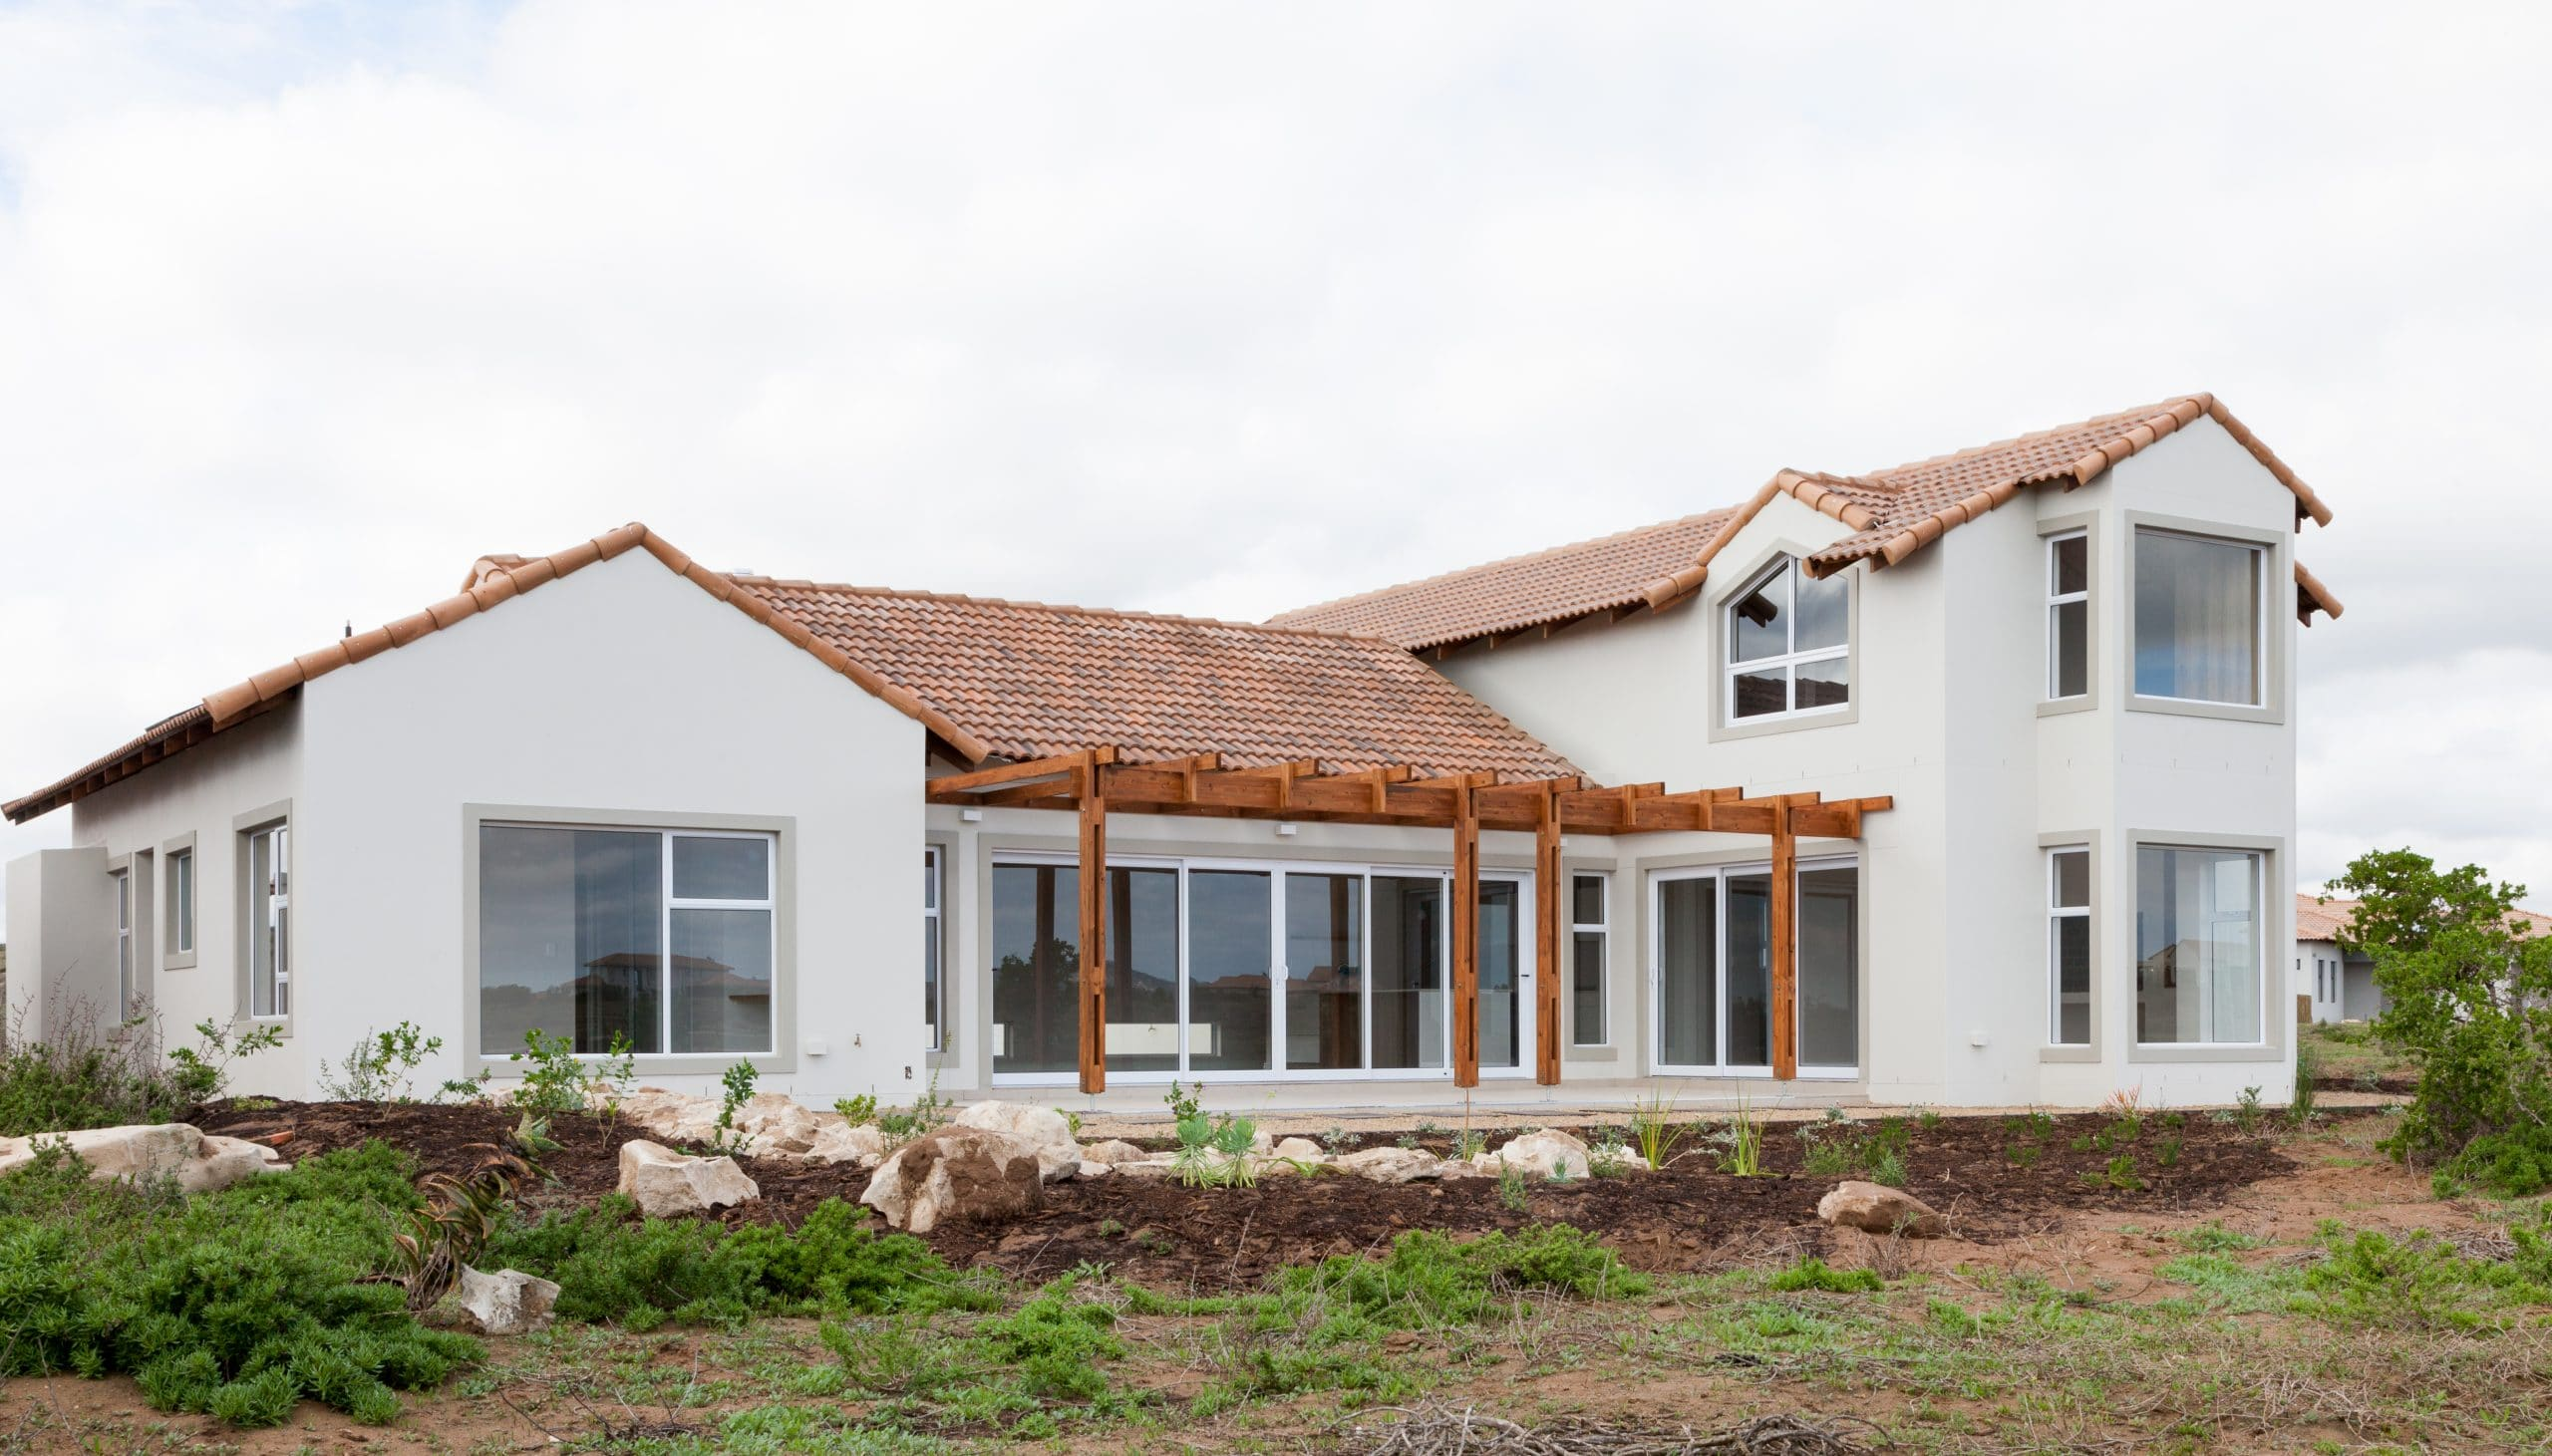 Swedish design home in langebaan country estate with wooden pergola tiled roof